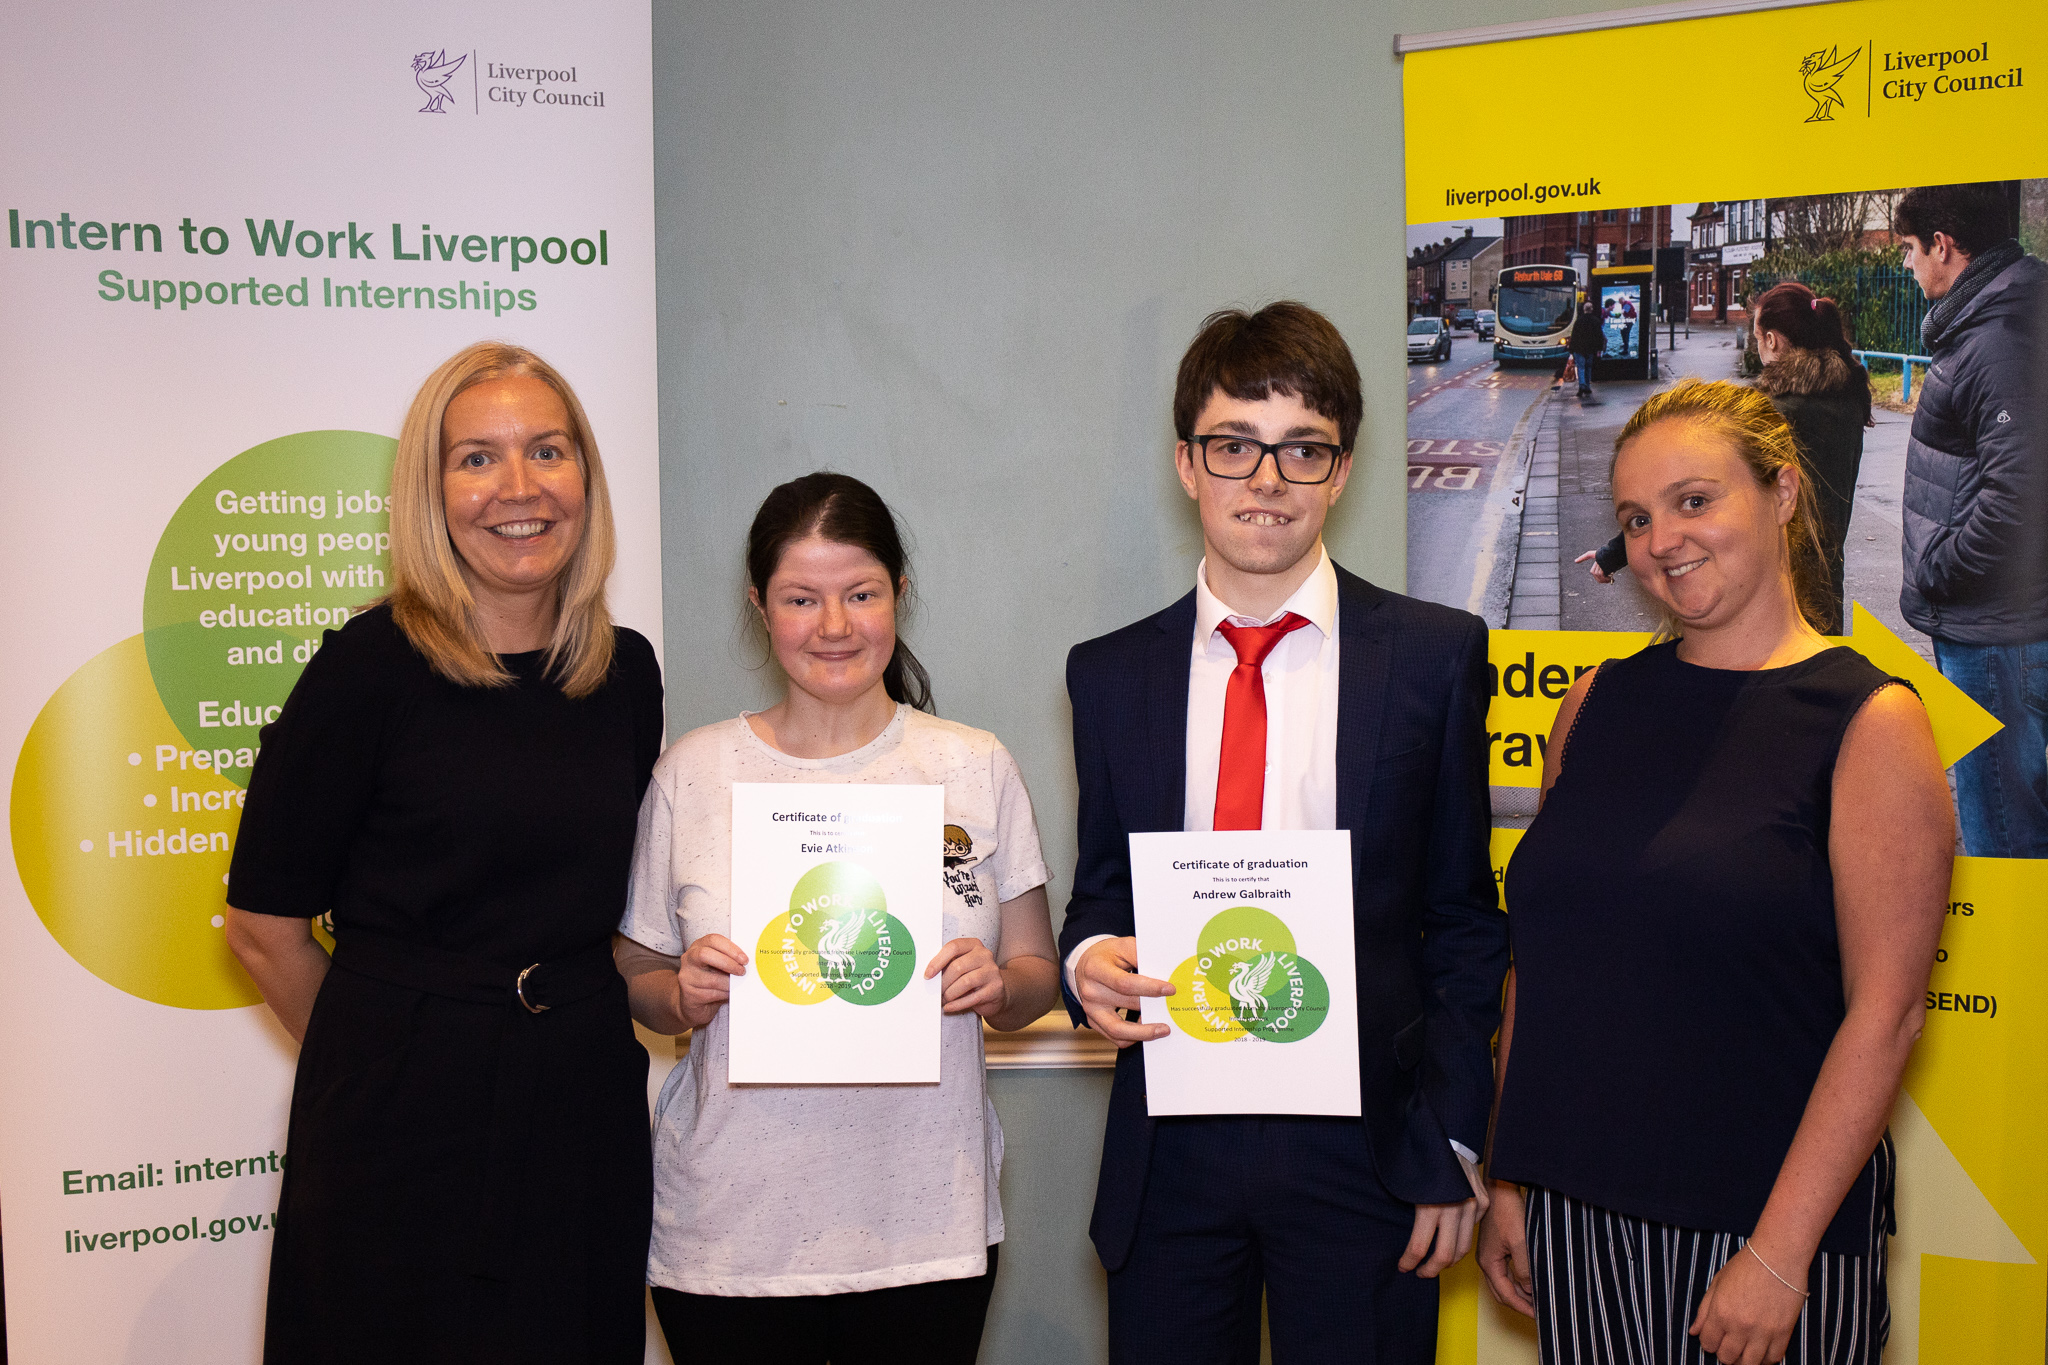 Evie and Andrew, supported interns from Bankview High School based at Hilton Hotel, with their head teacher Juliette Gelling and job coach Maria Hughes.